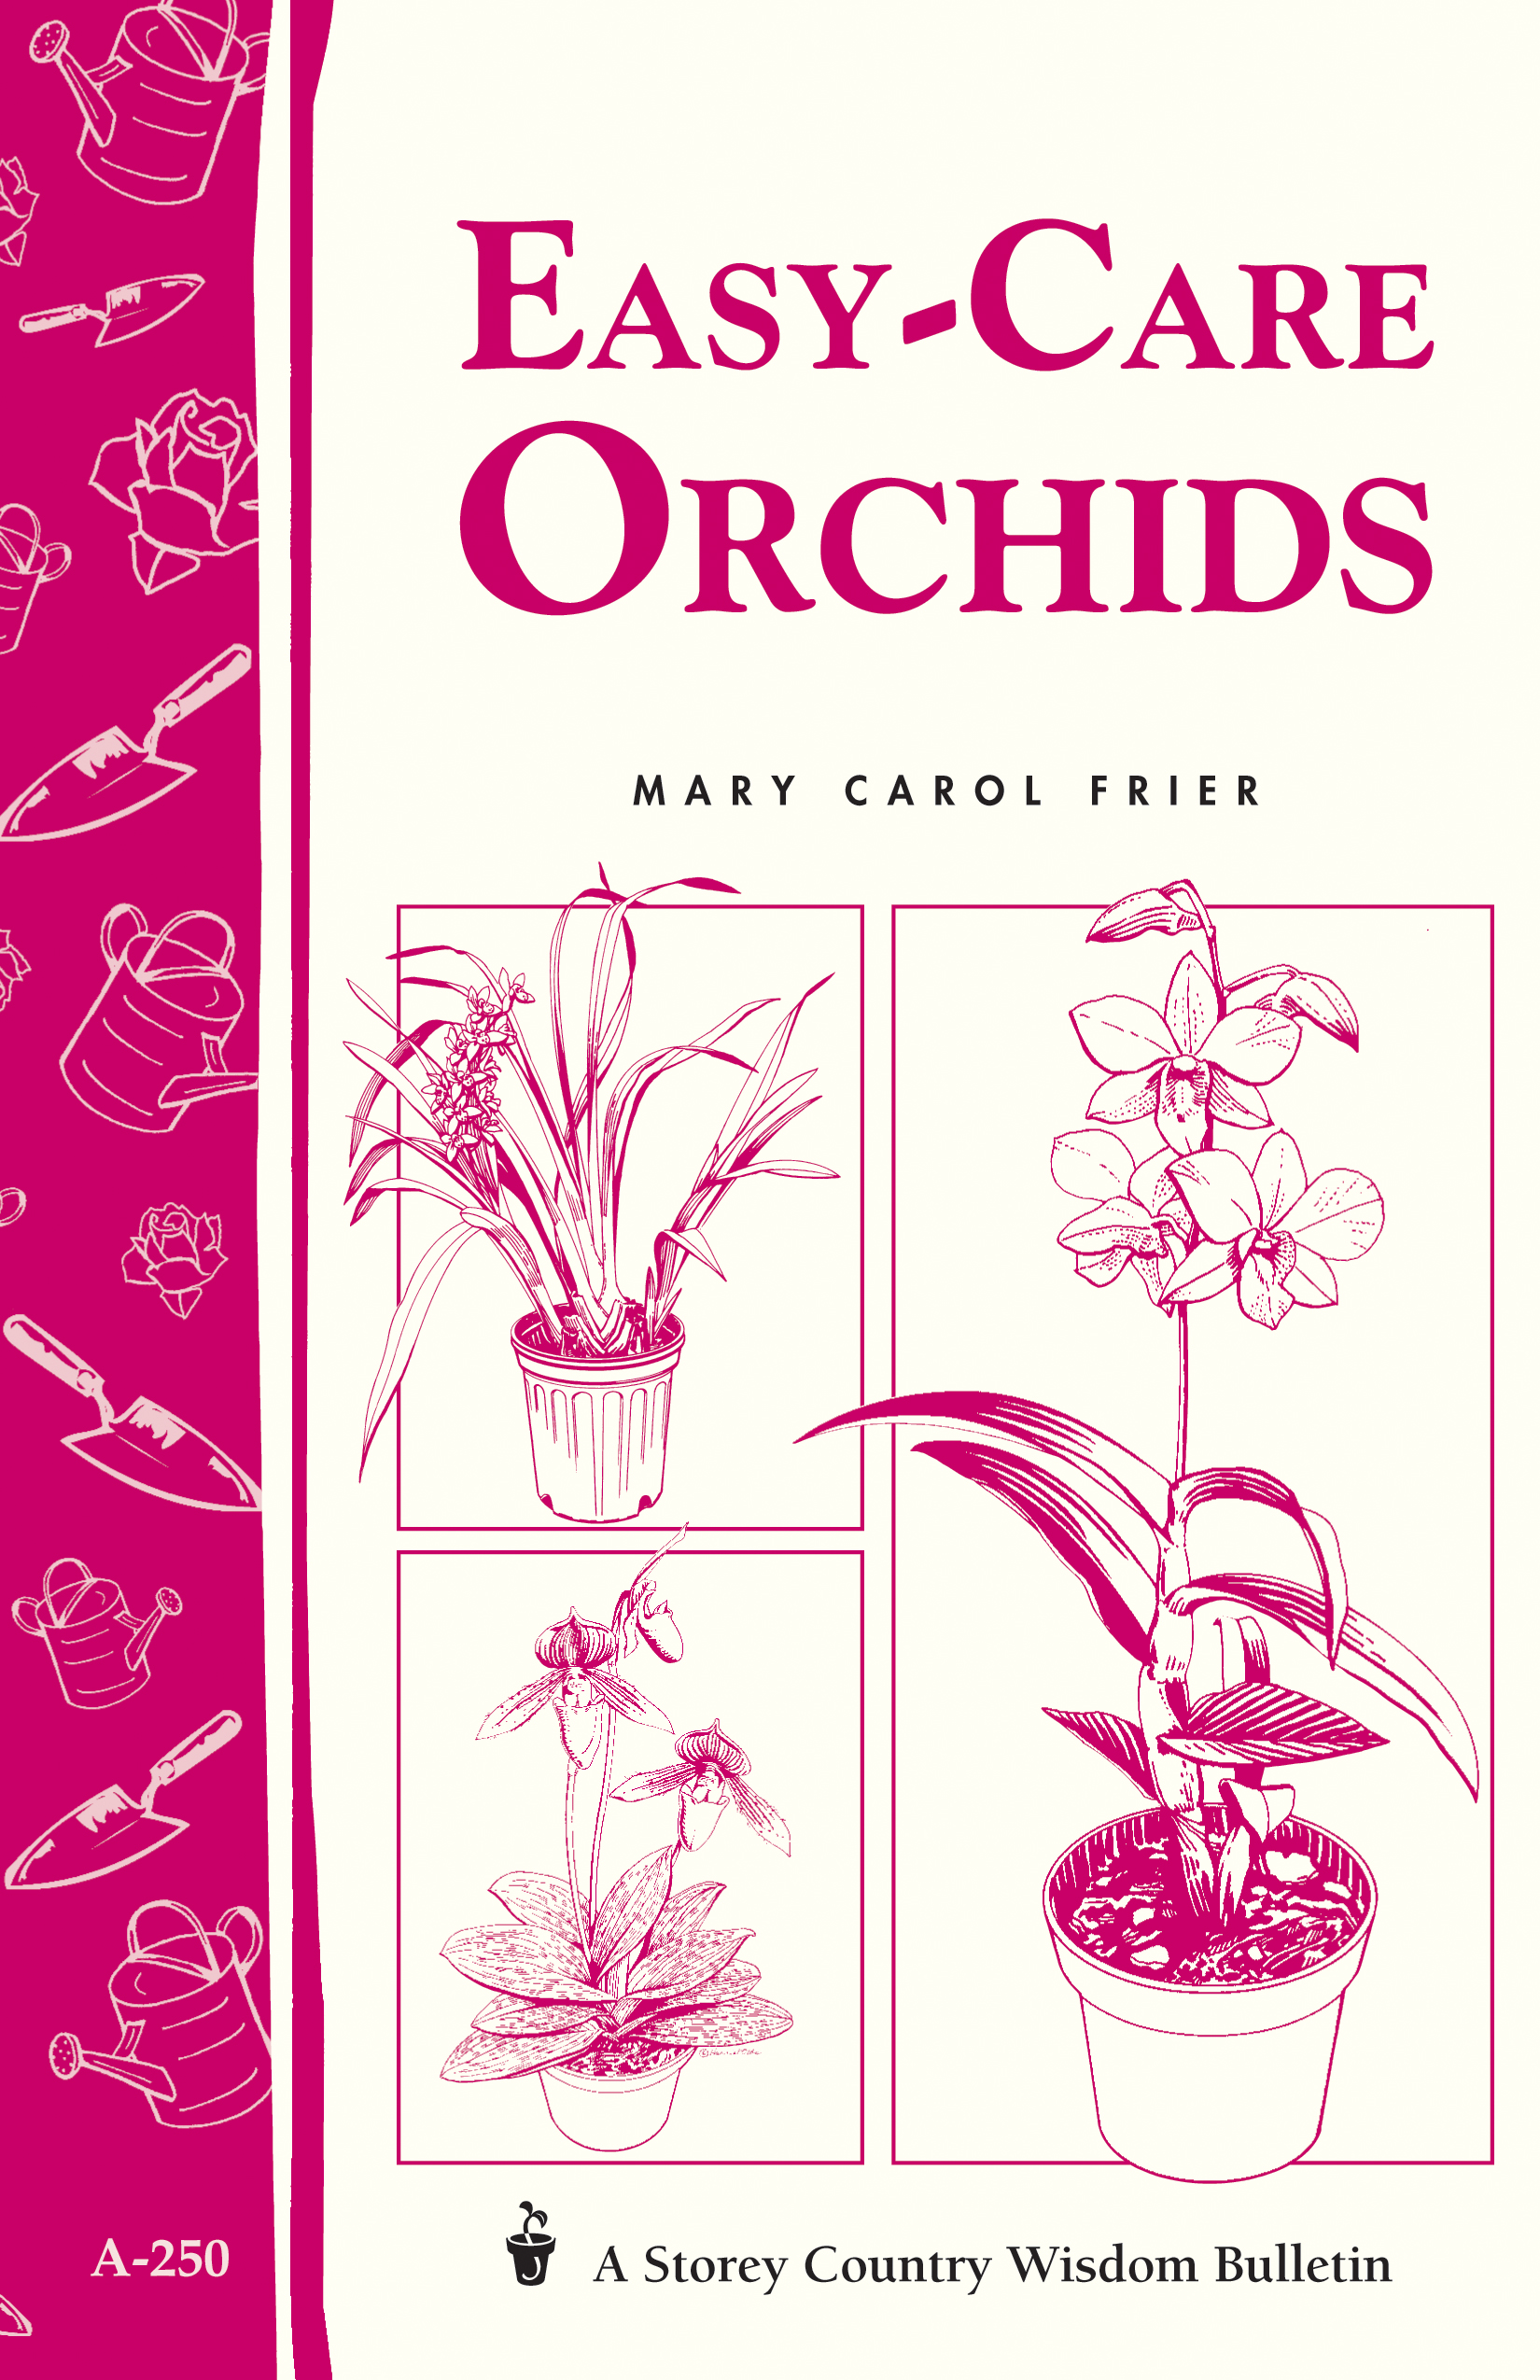 Easy-Care Orchids Storey's Country Wisdom Bulletin A-250 - Mary Carol Frier